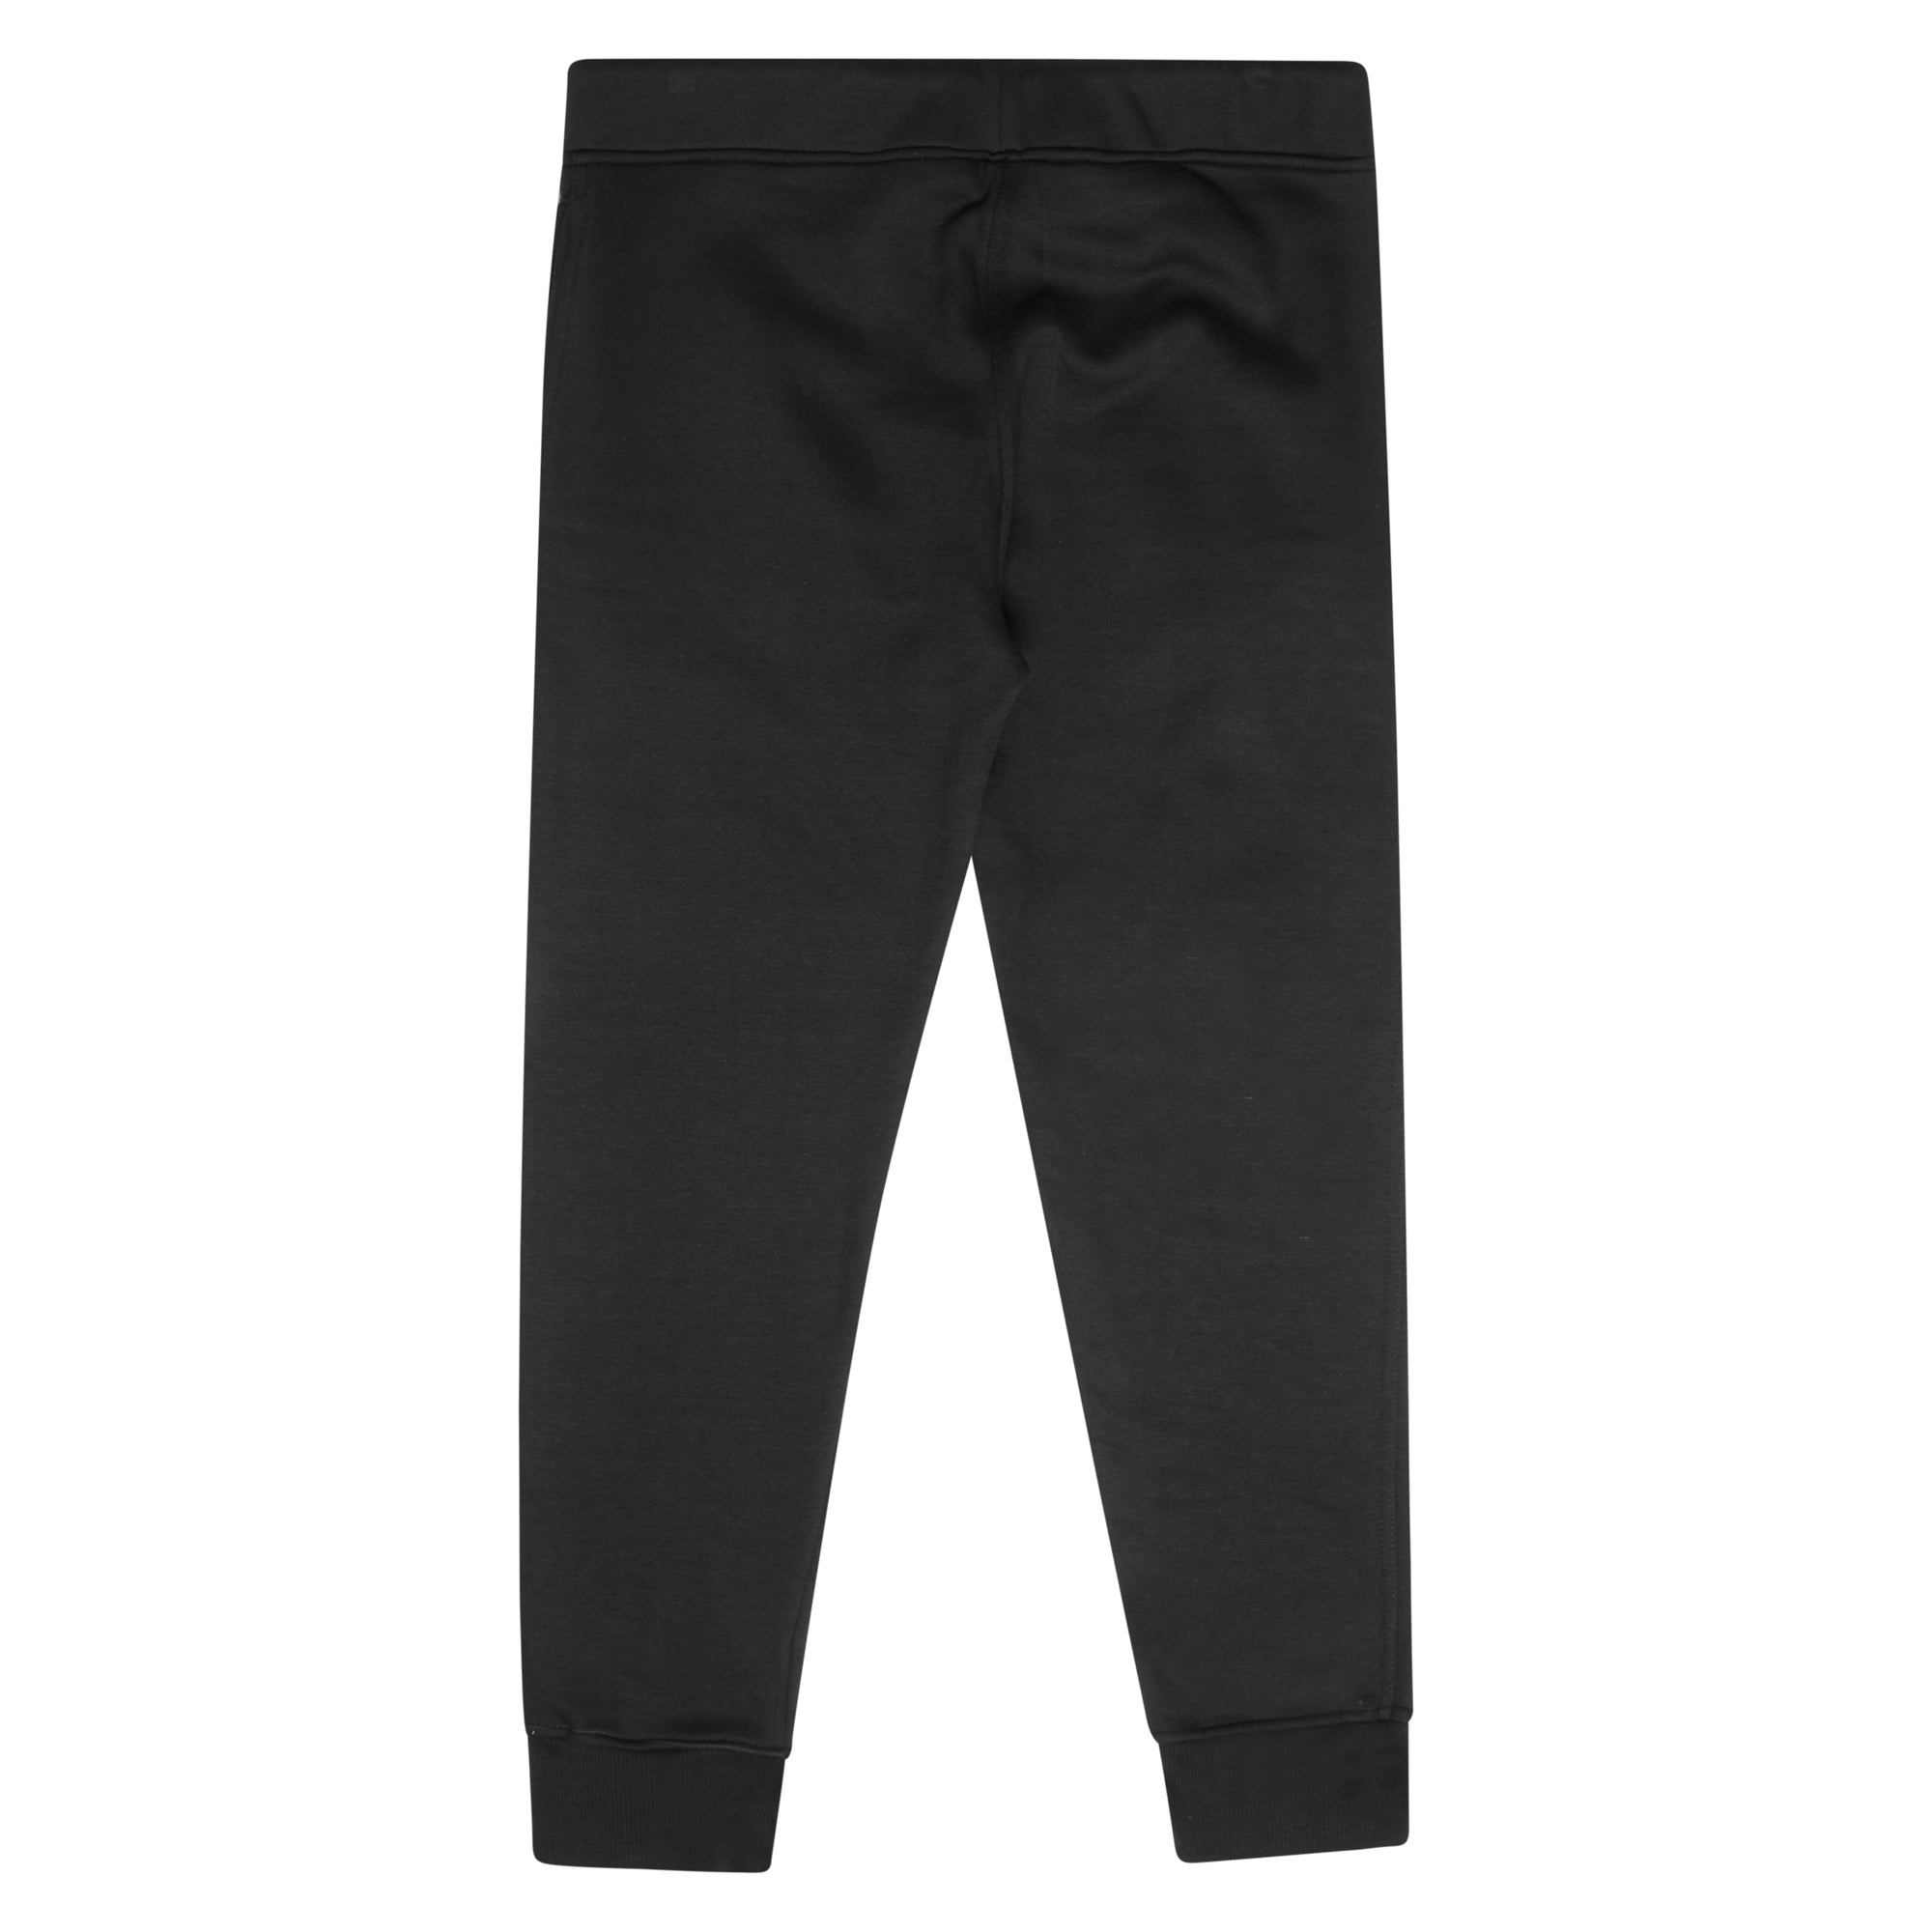 1FIGURES - Black Arc Staple Sweatpants